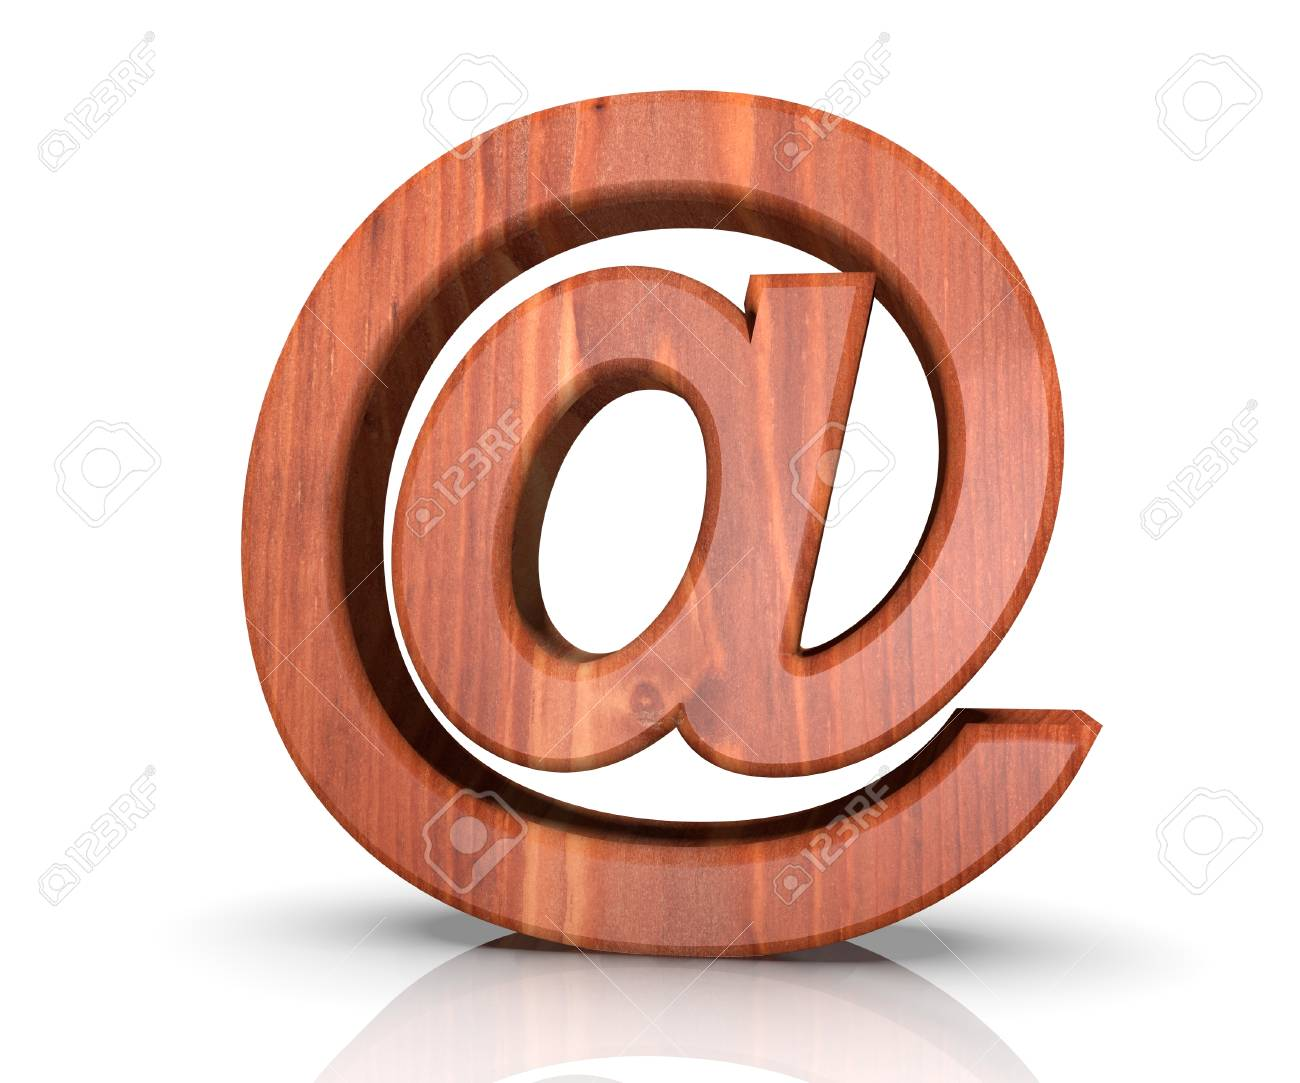 Alphabet Wooden Texture At Email Mark Sign Letter 3d Rendering